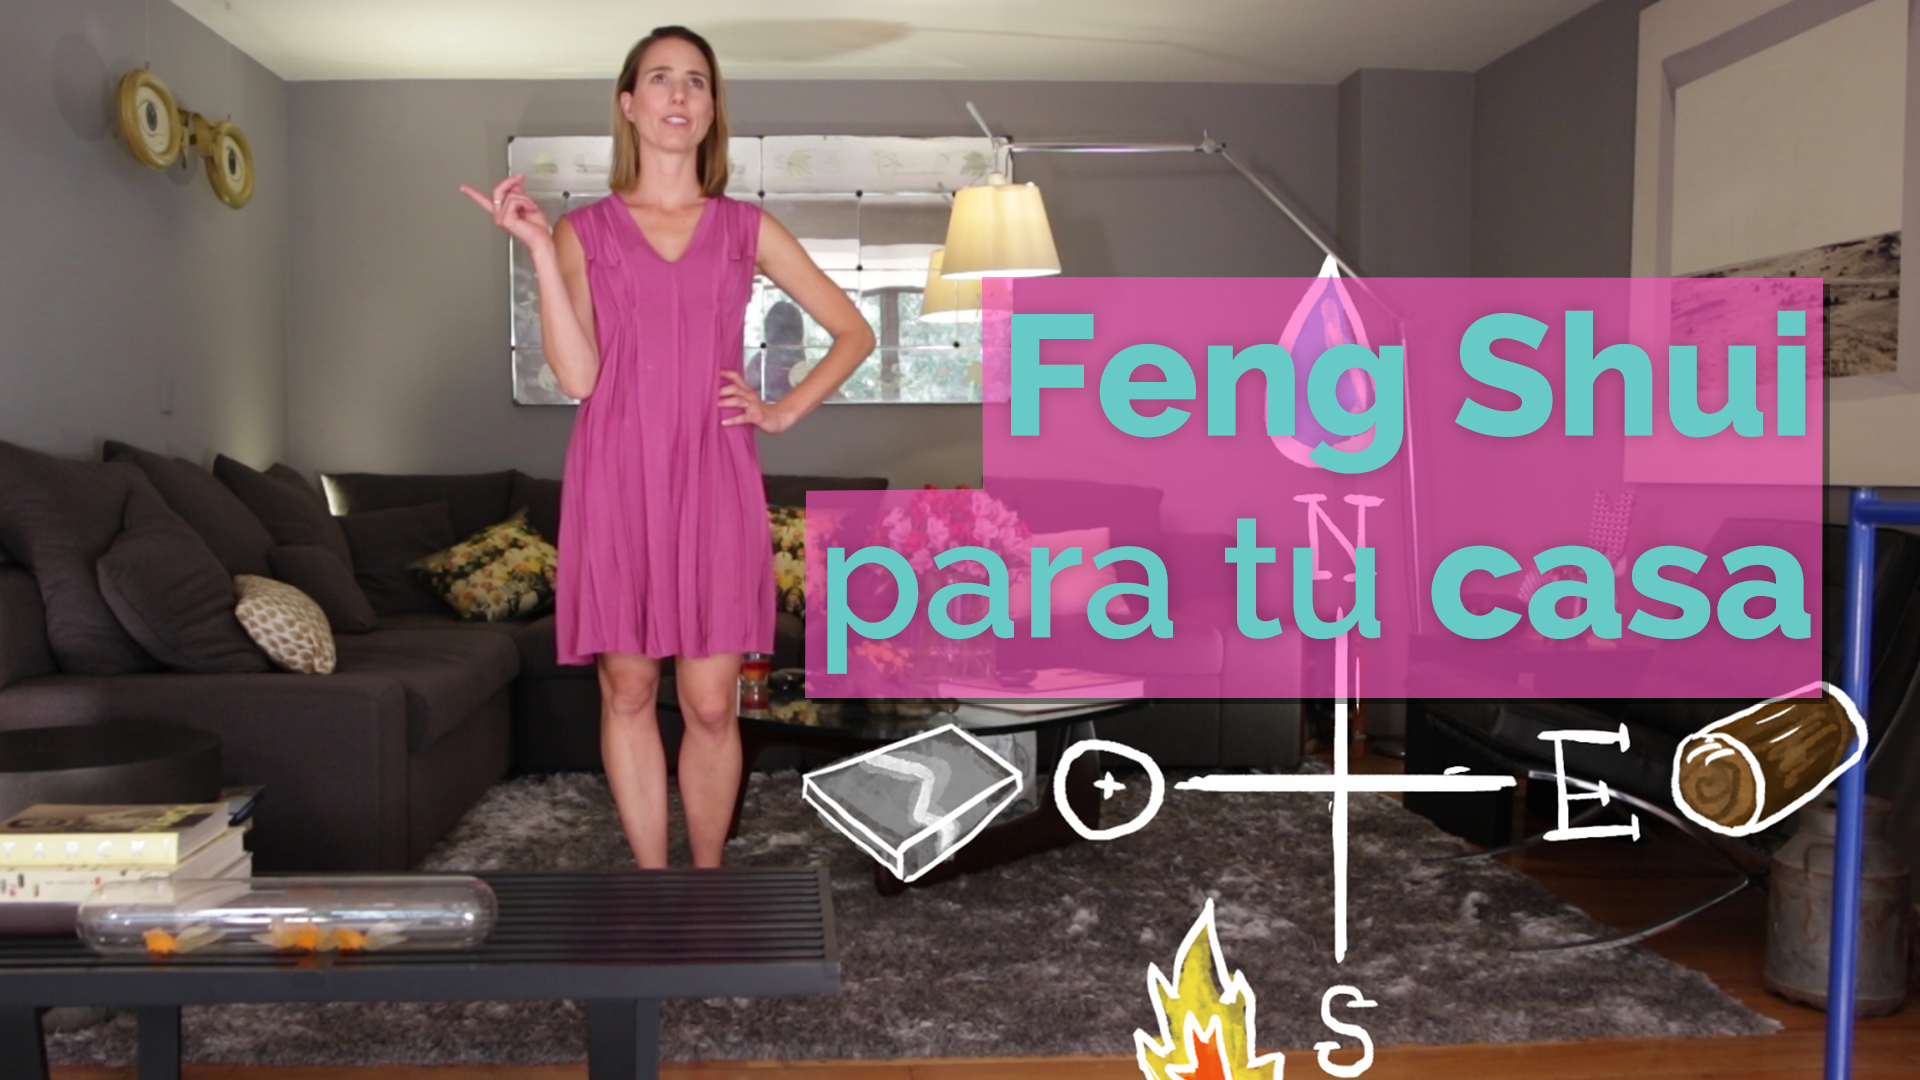 Tips de feng shui para decorar la casa me lo dijo lola for Decorar la casa segun el feng shui